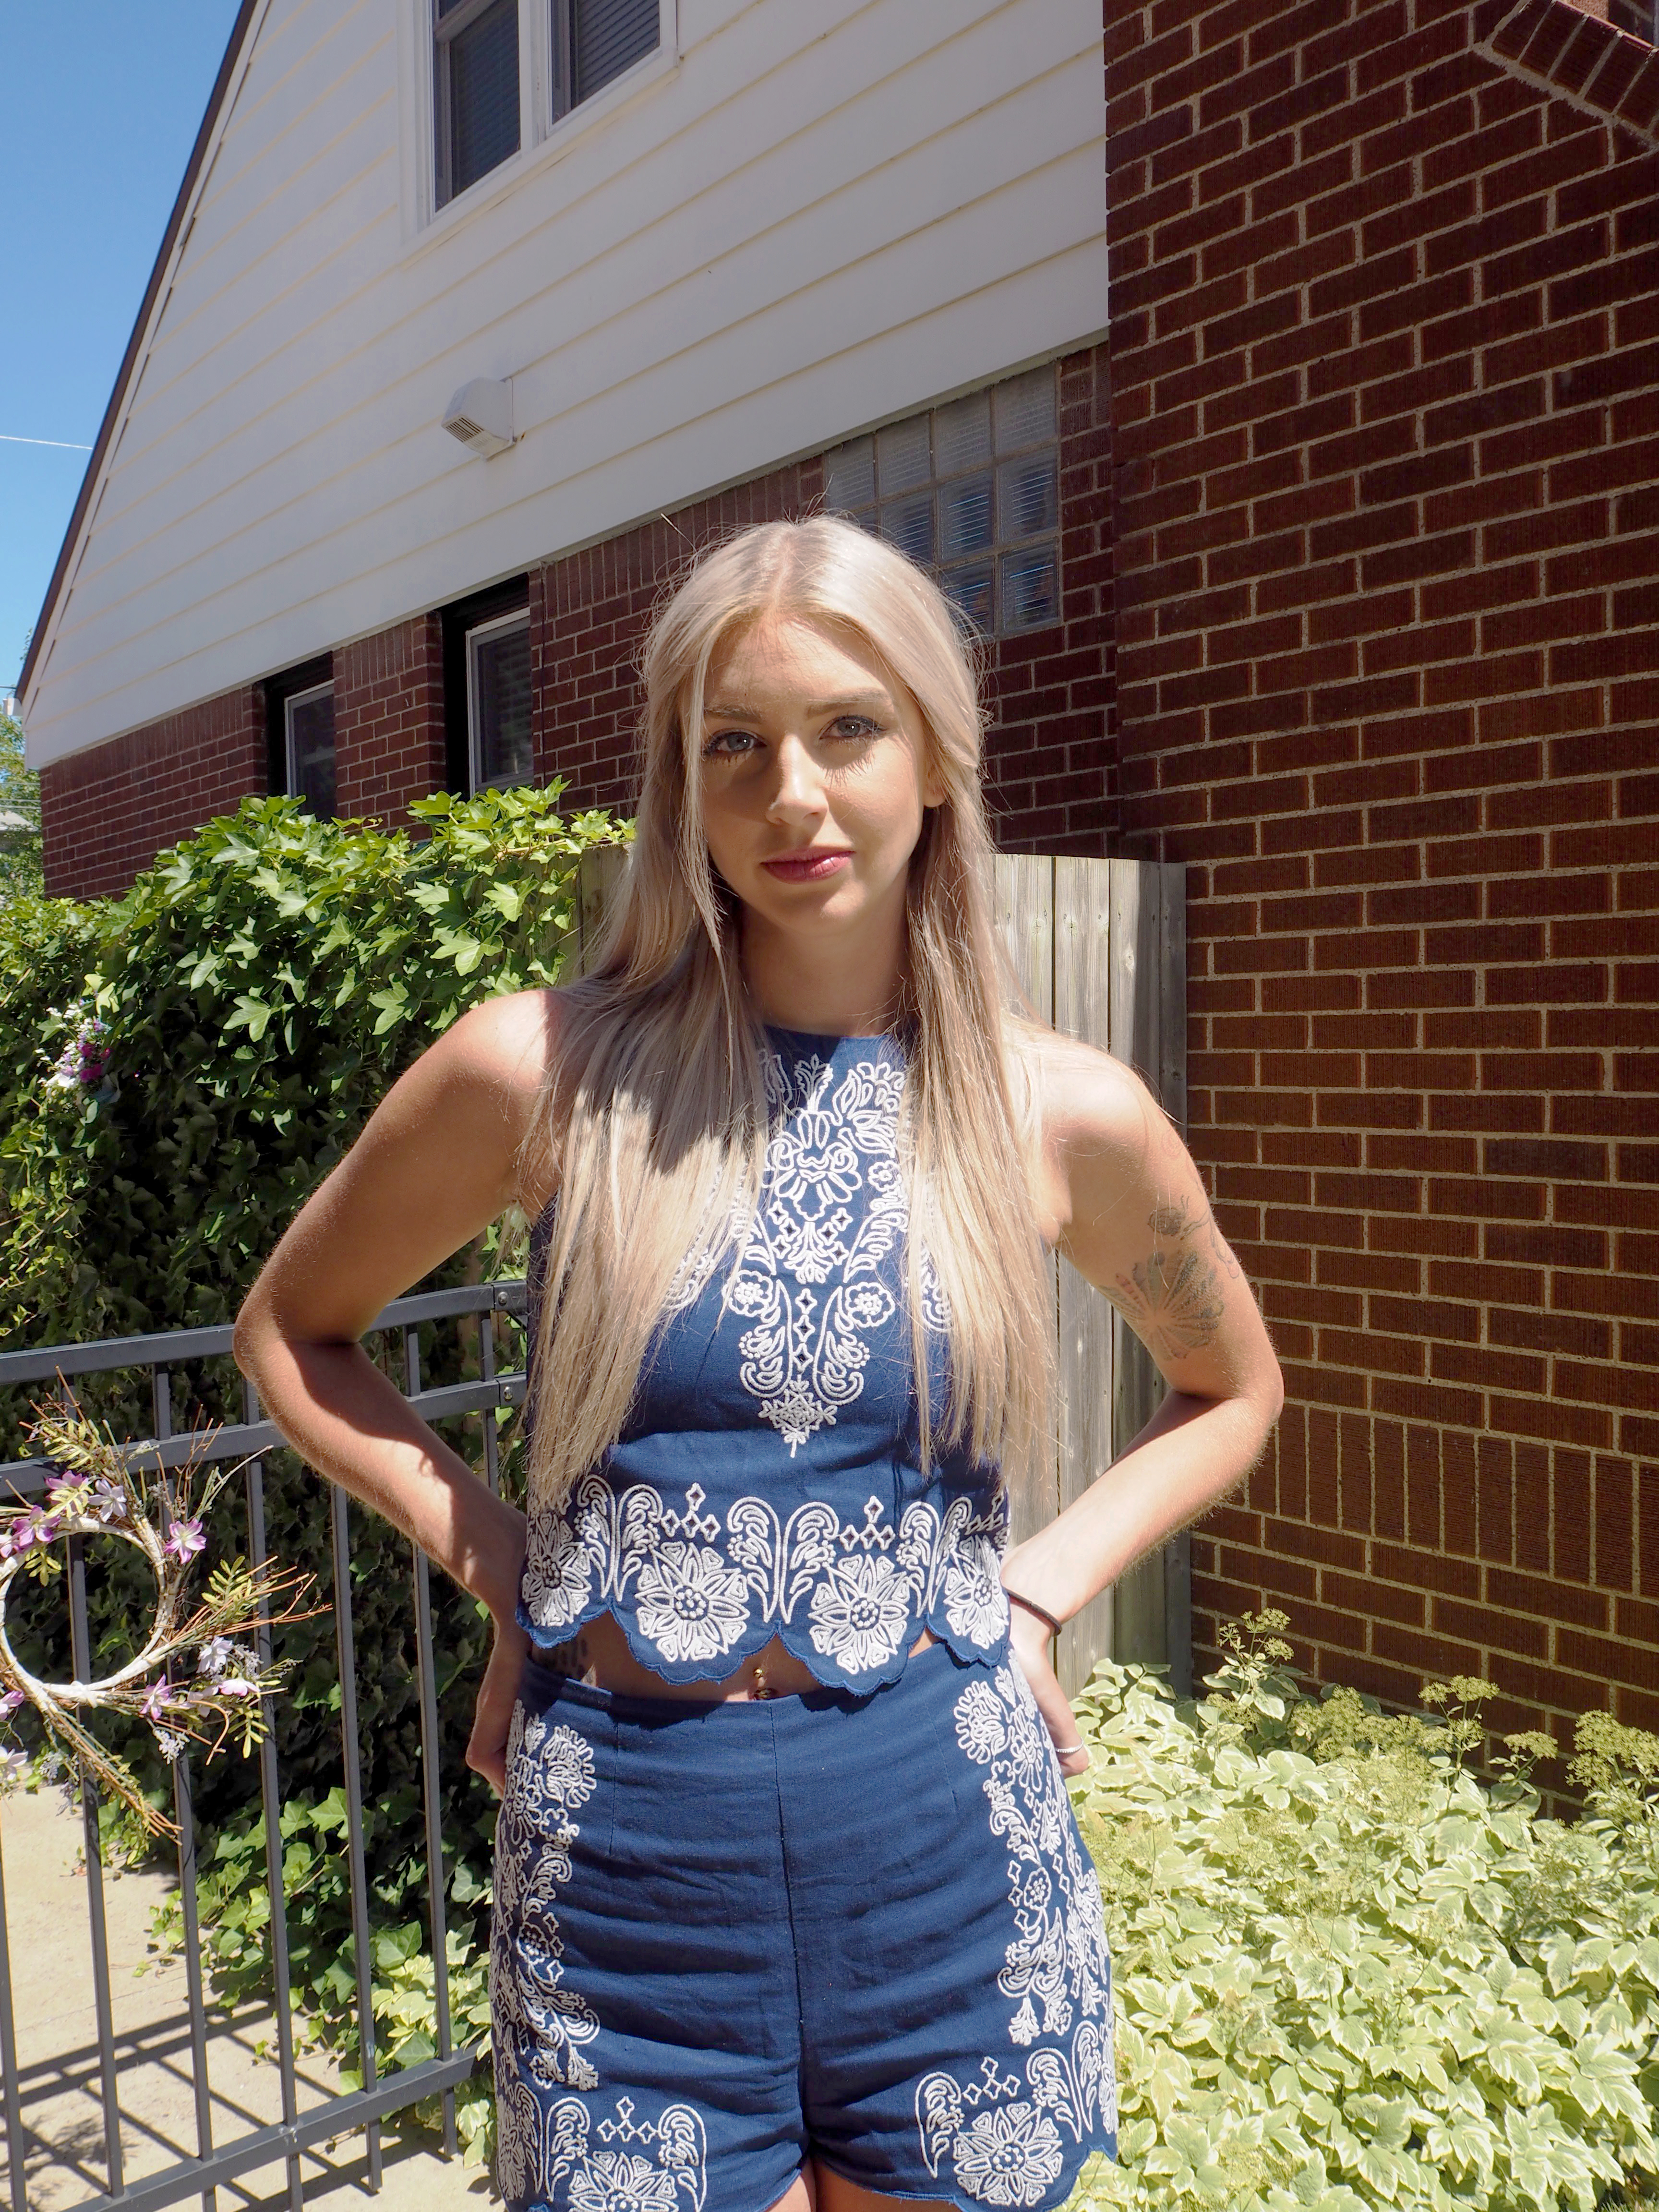 H&M Blue embroidered co-ord top and shorts outfit post